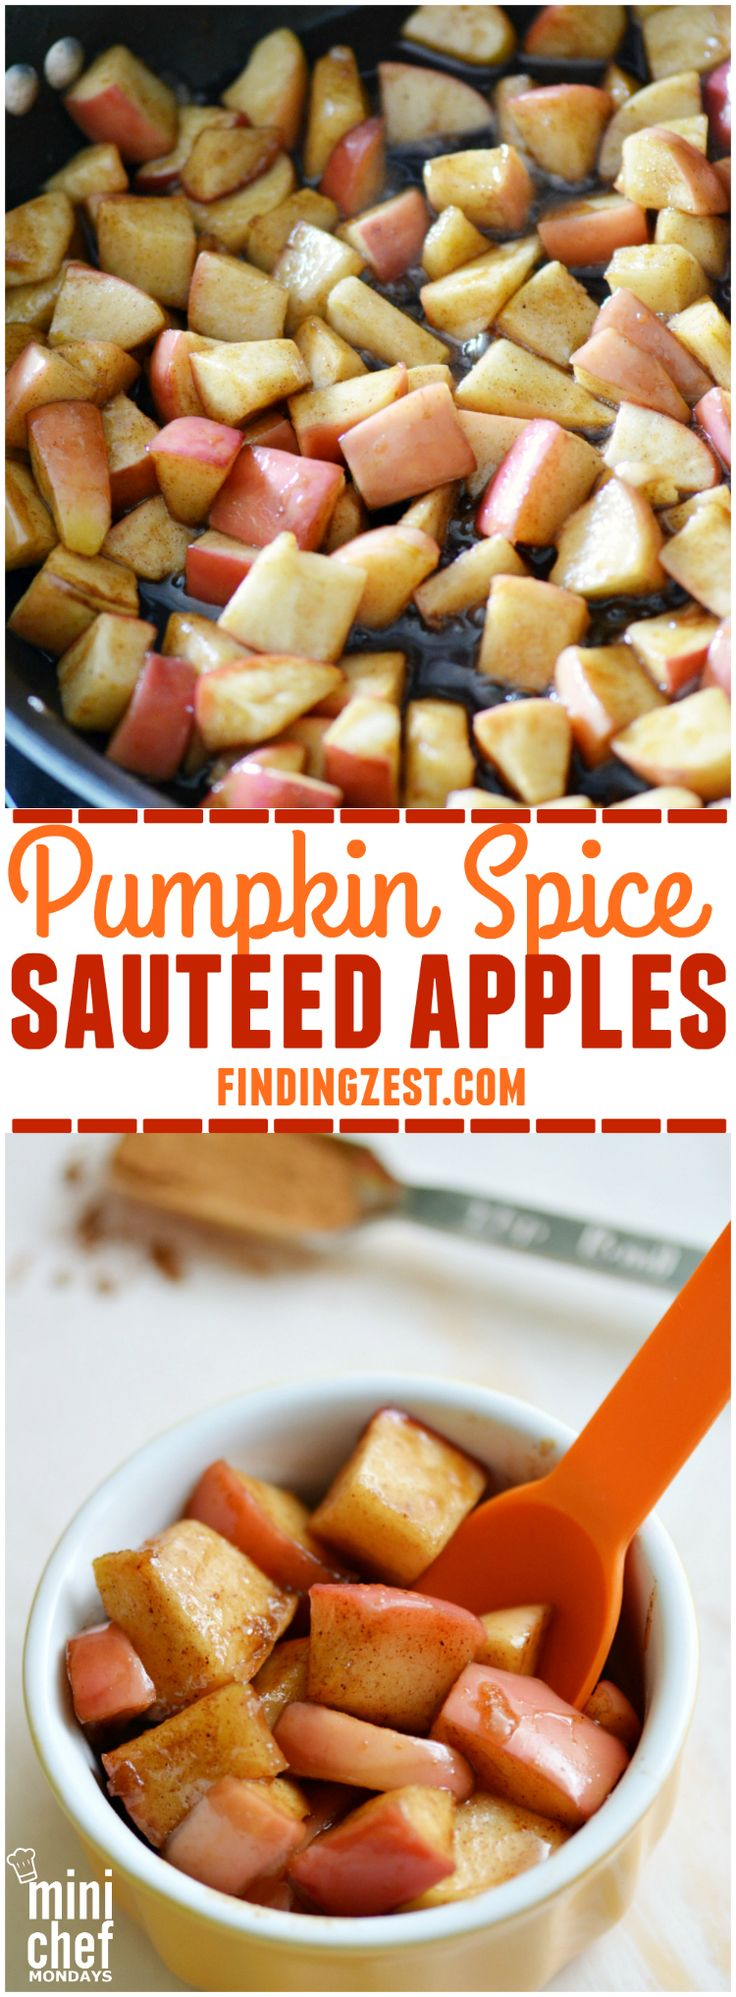 Pumpkin Spice Sauteed Apples: Just 4 ingredients are needed to make these delicious sauteed apples. Enjoy them as a snack as is or a topping for ice cream or pancakes!